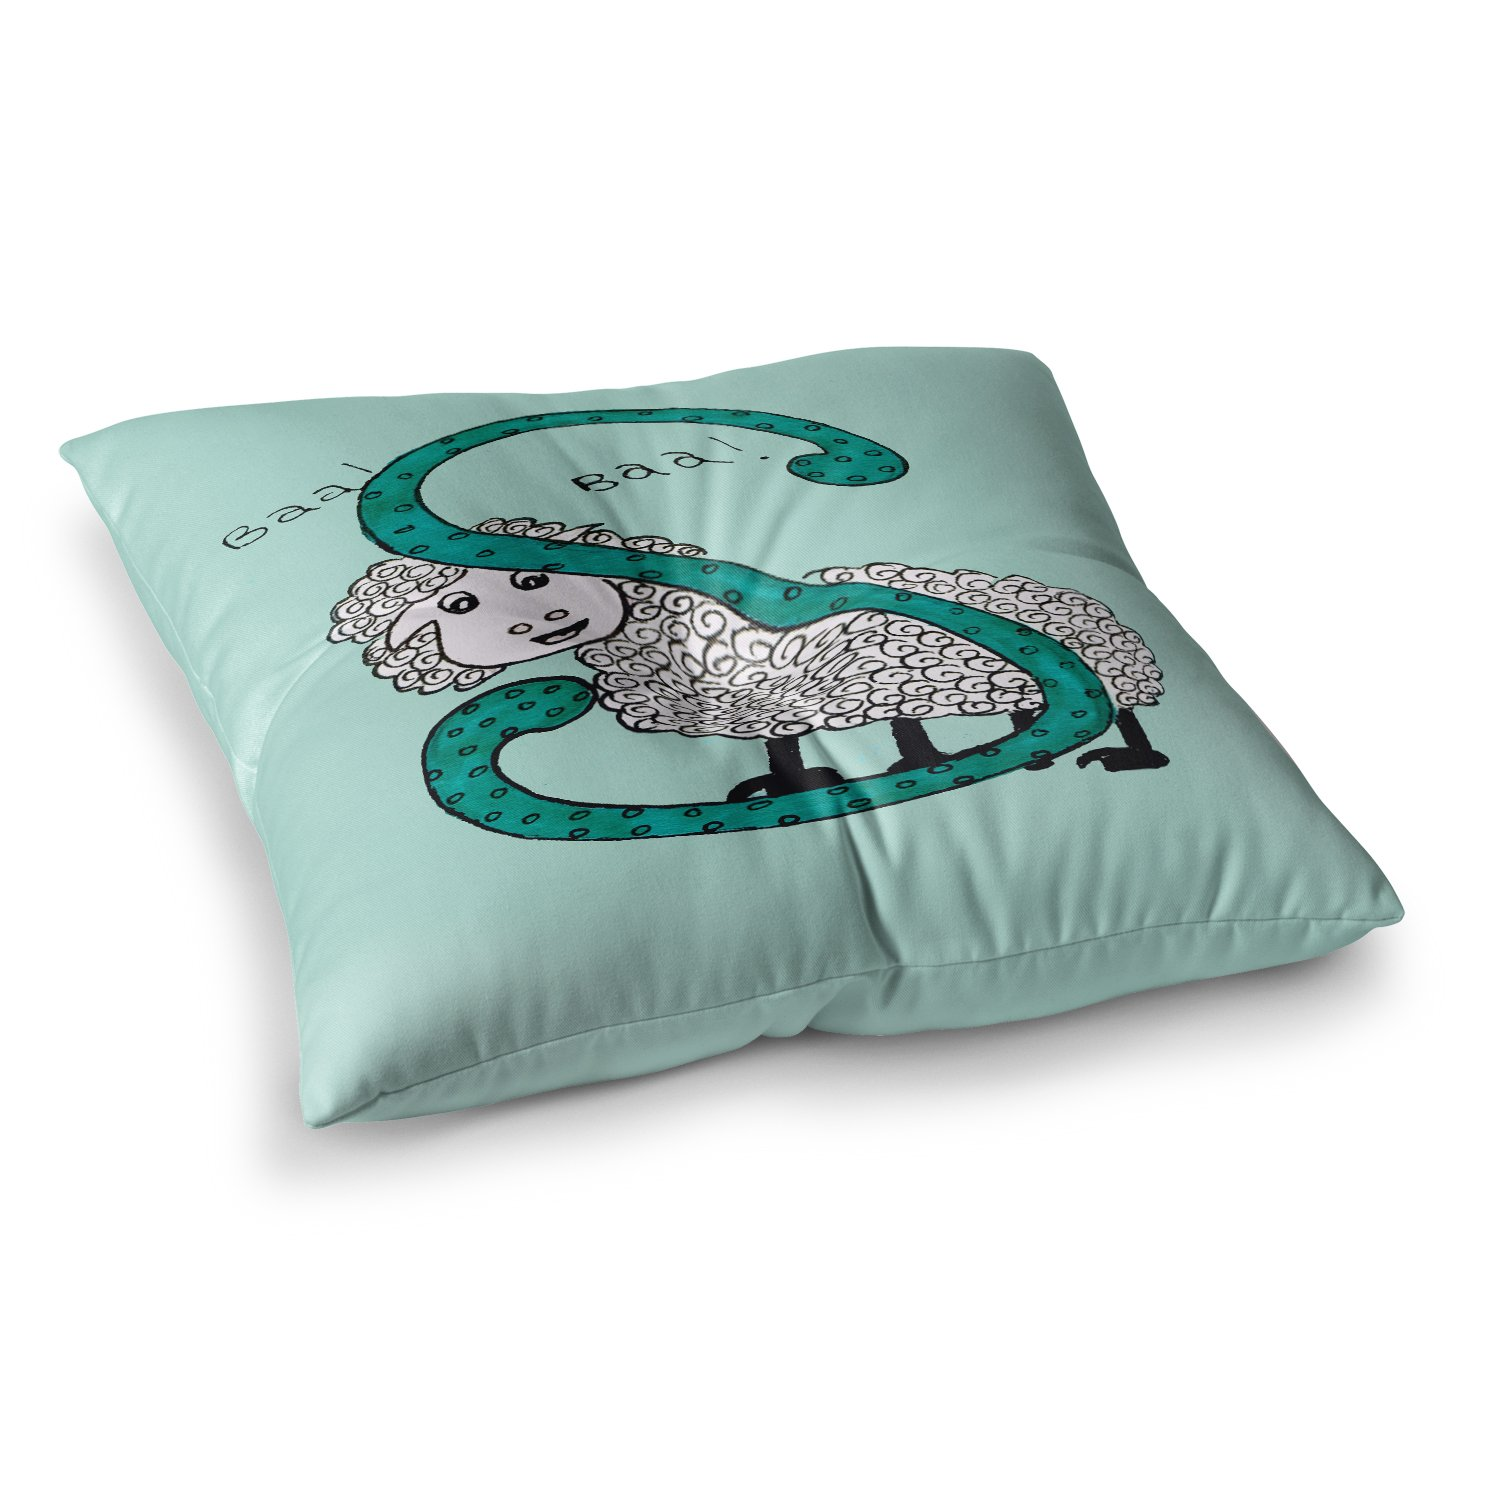 23 x 23 Square Floor Pillow Kess InHouse Rosie Brown Sis for Sheep Blue Teal